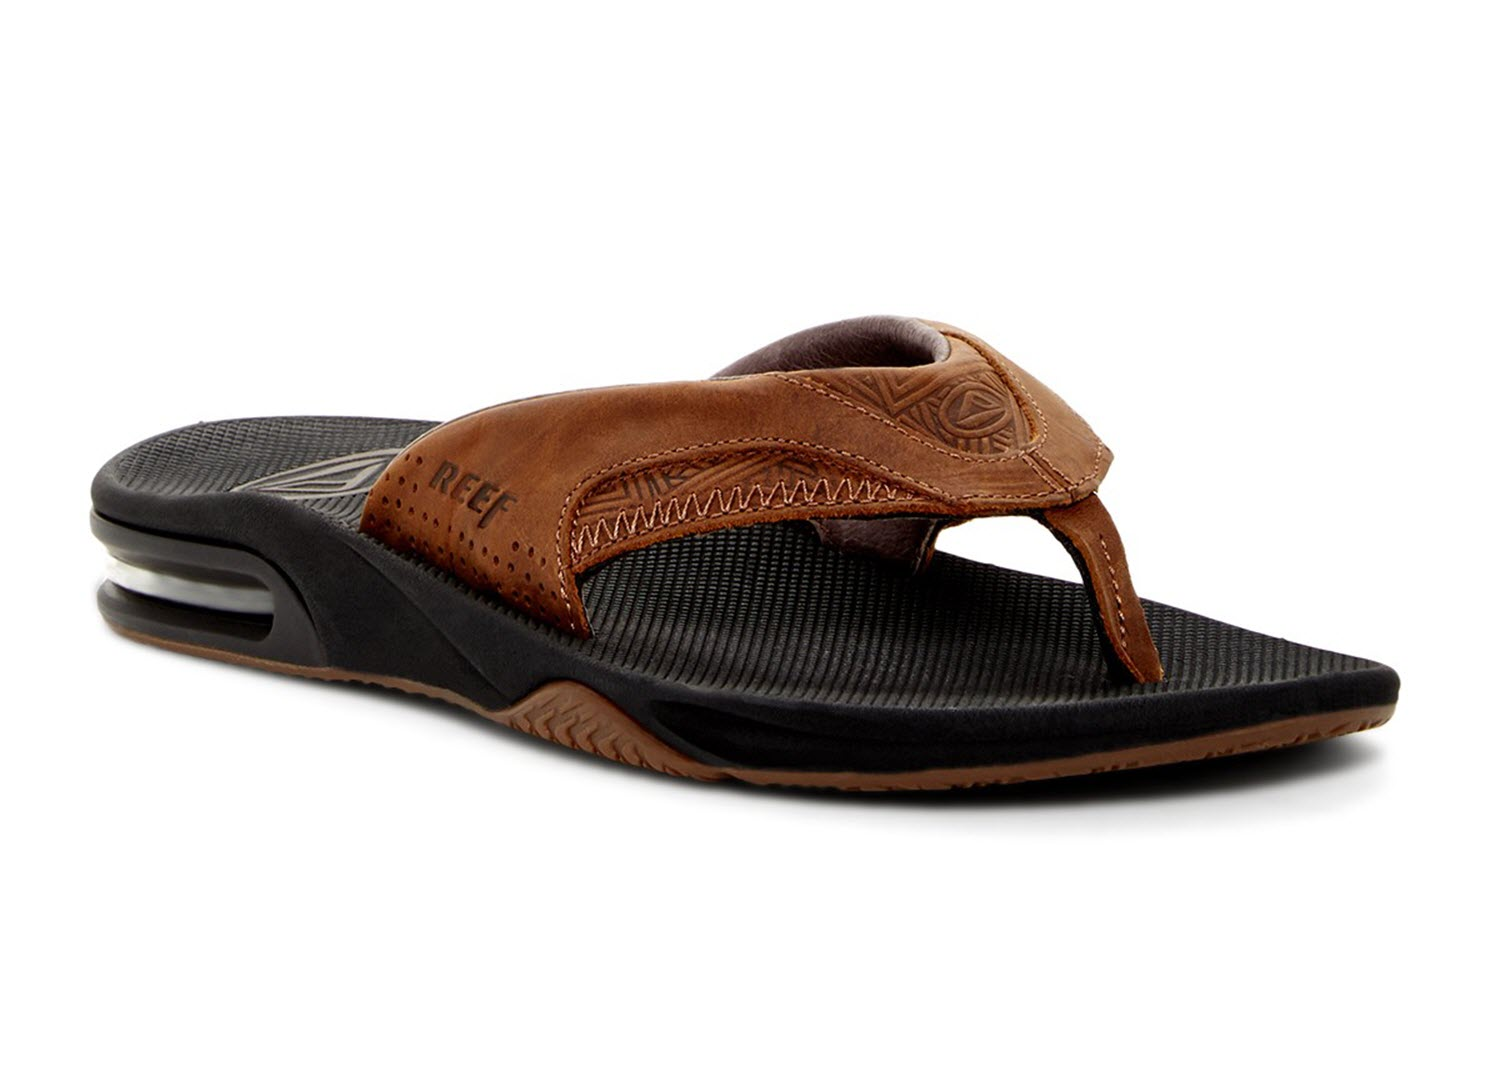 03bfc77ef3e Reef Sandal - Leather Fanning Flip Flops - Mick Fanning Pro Model ...